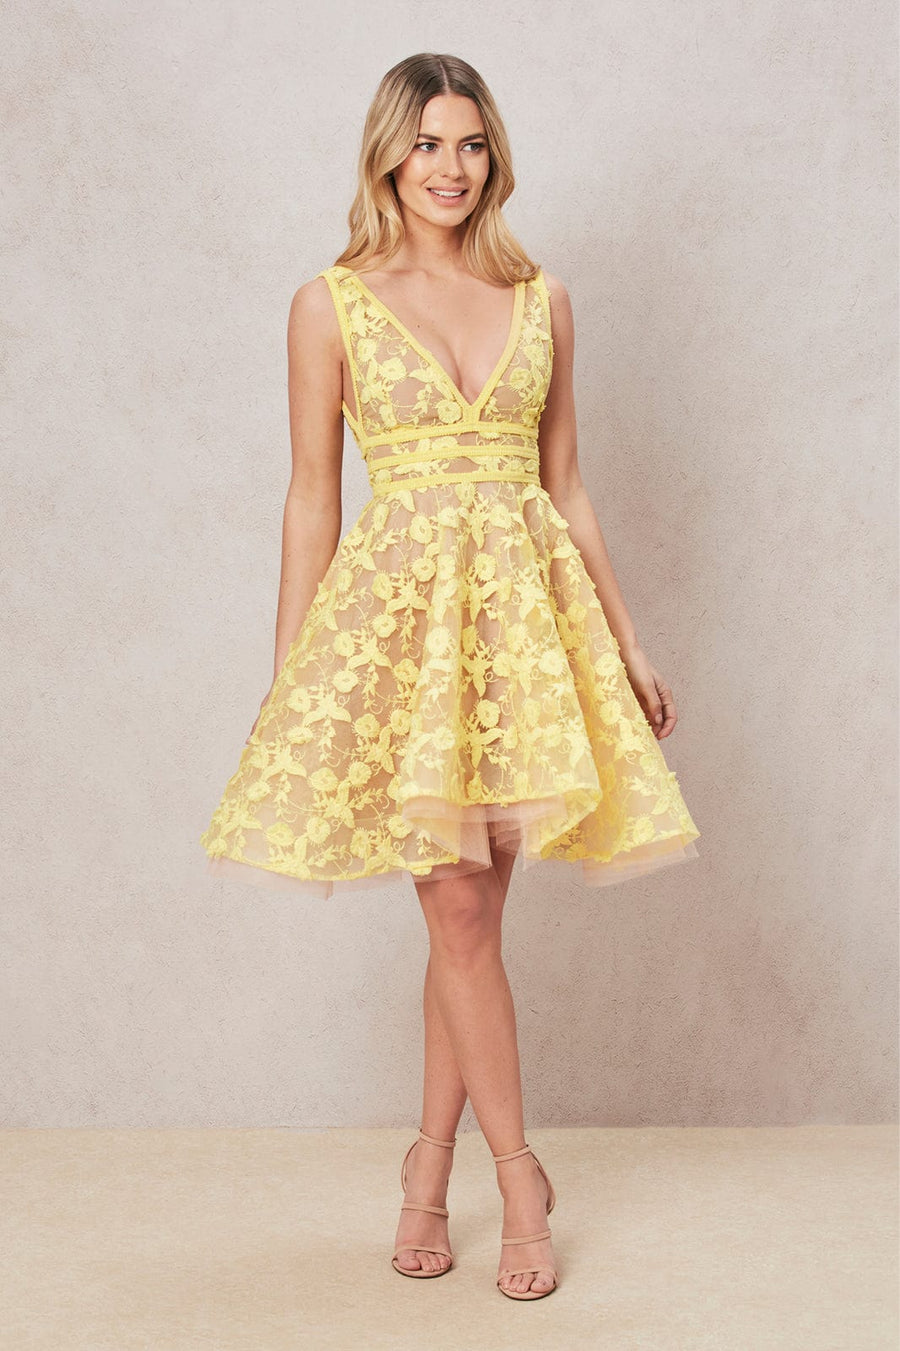 Lola Lemon Dress